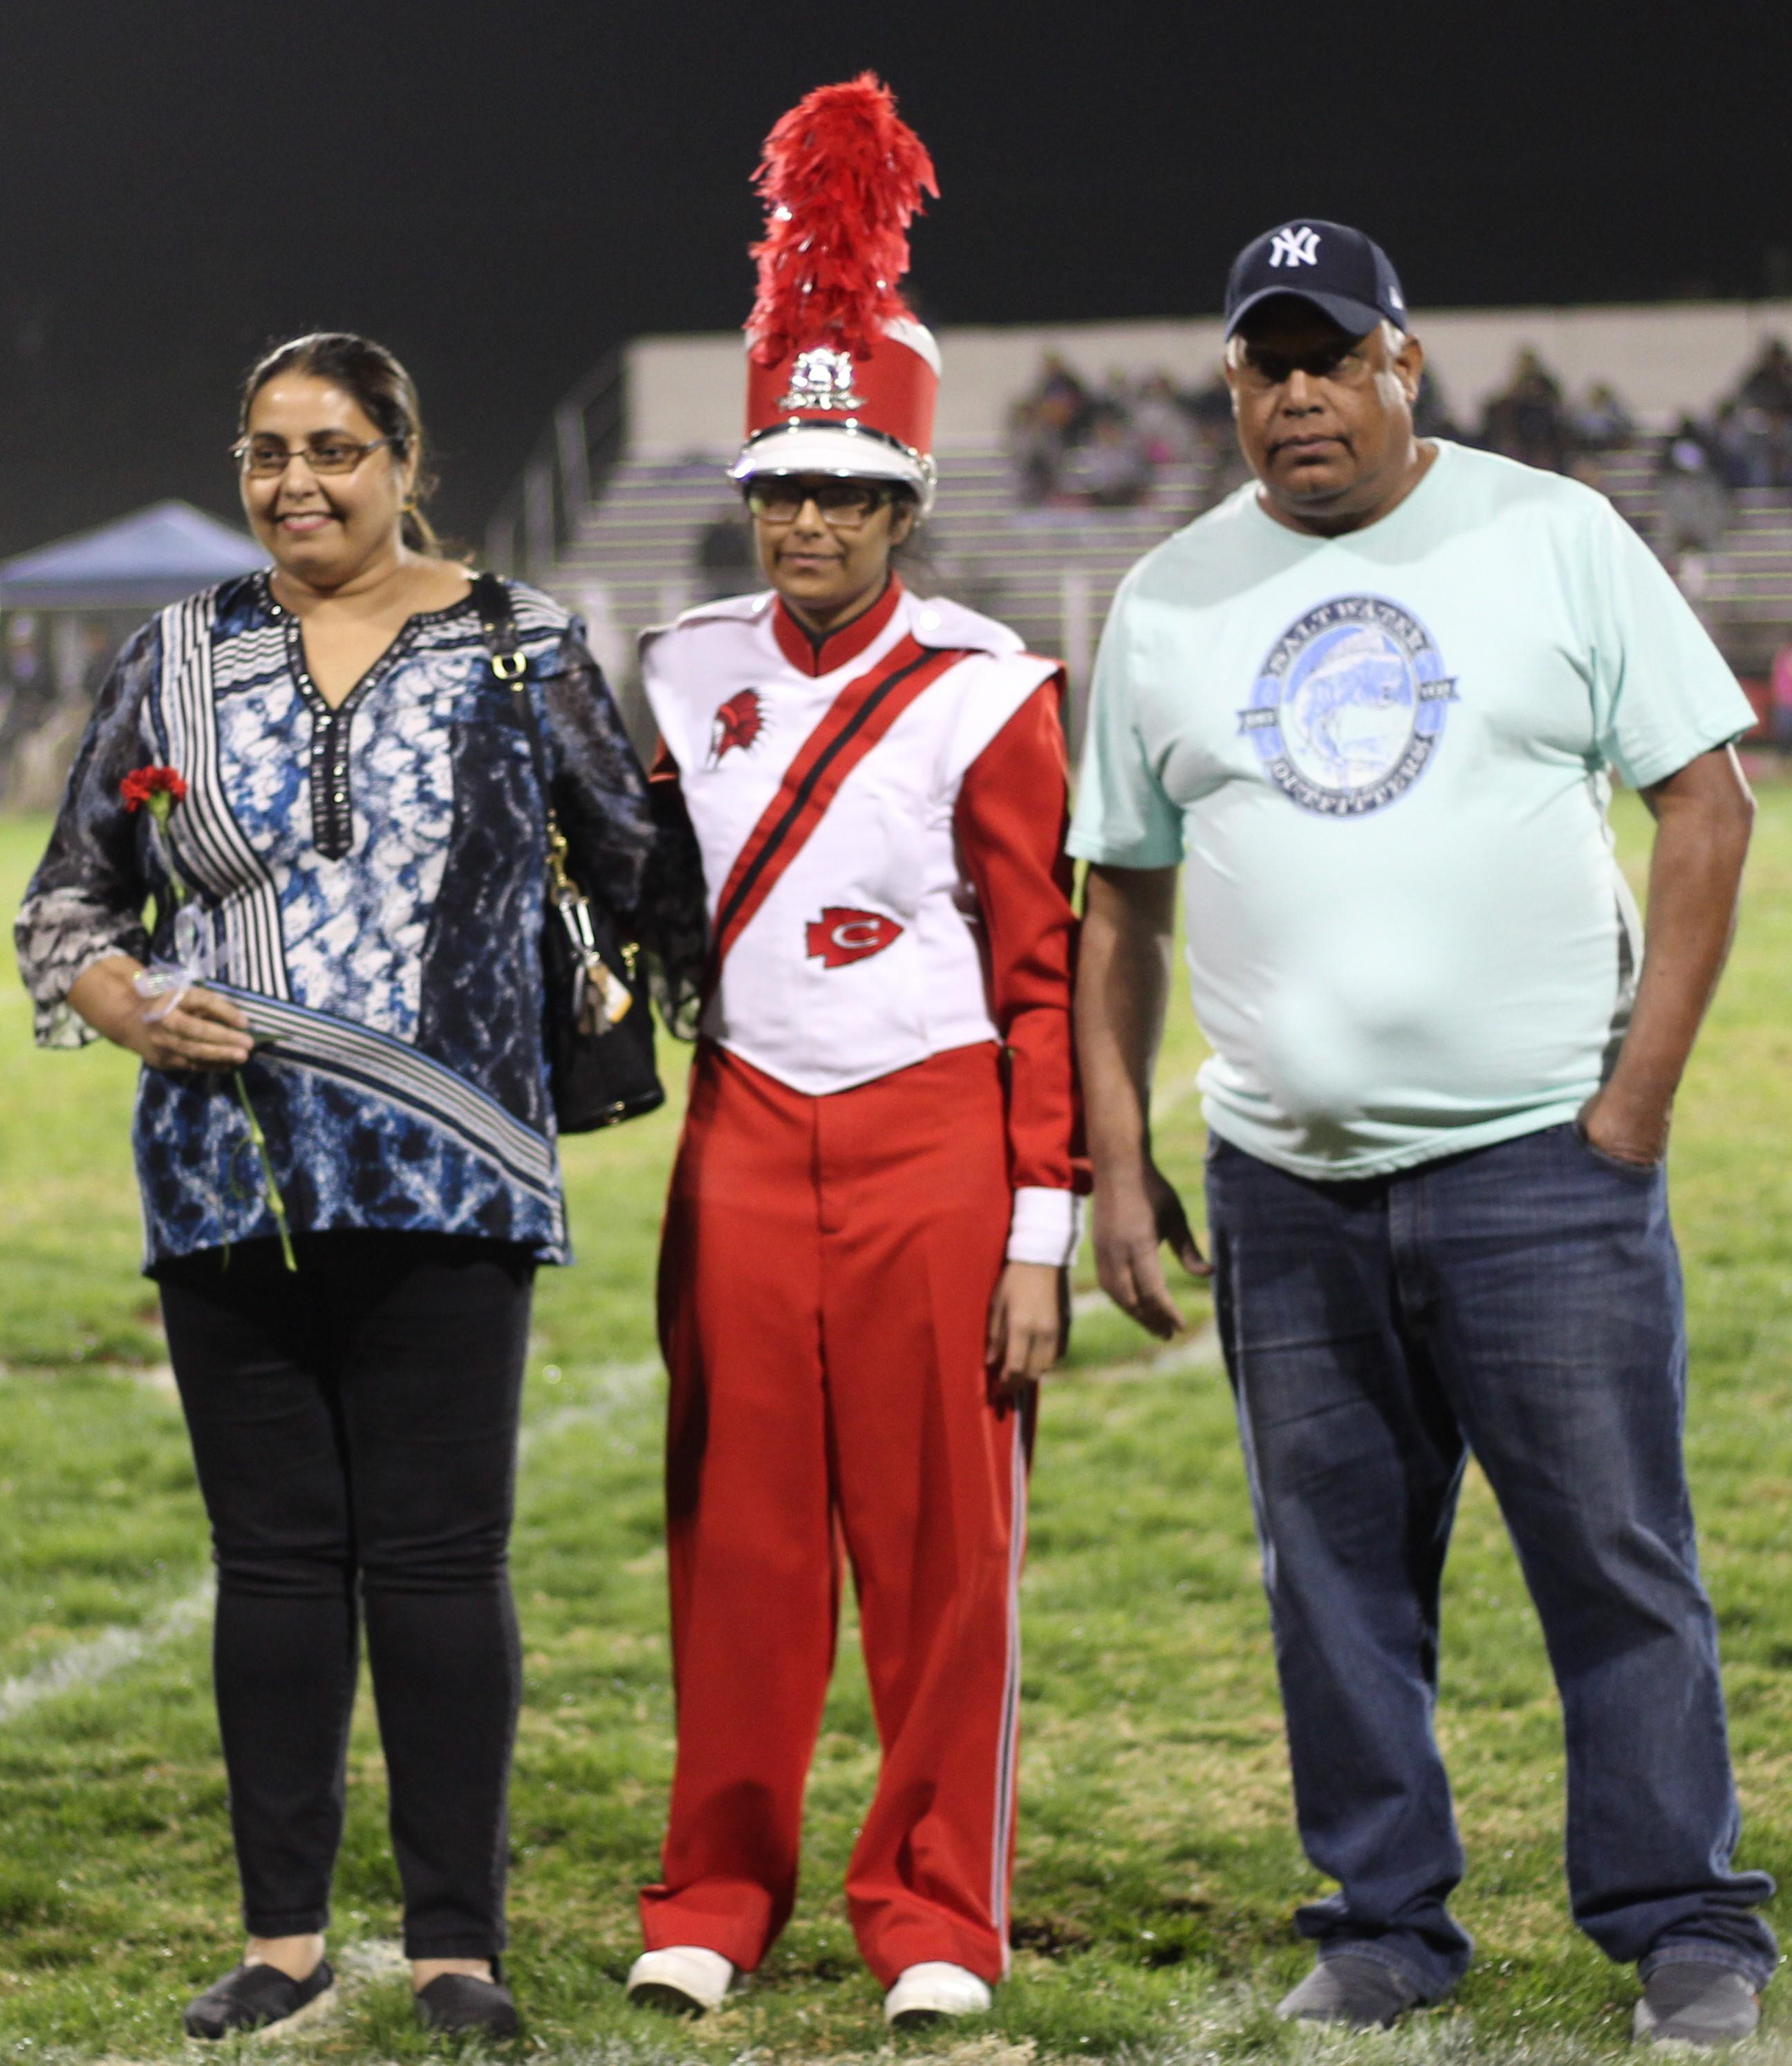 Senior band member Abhineet Singh and her escorts.